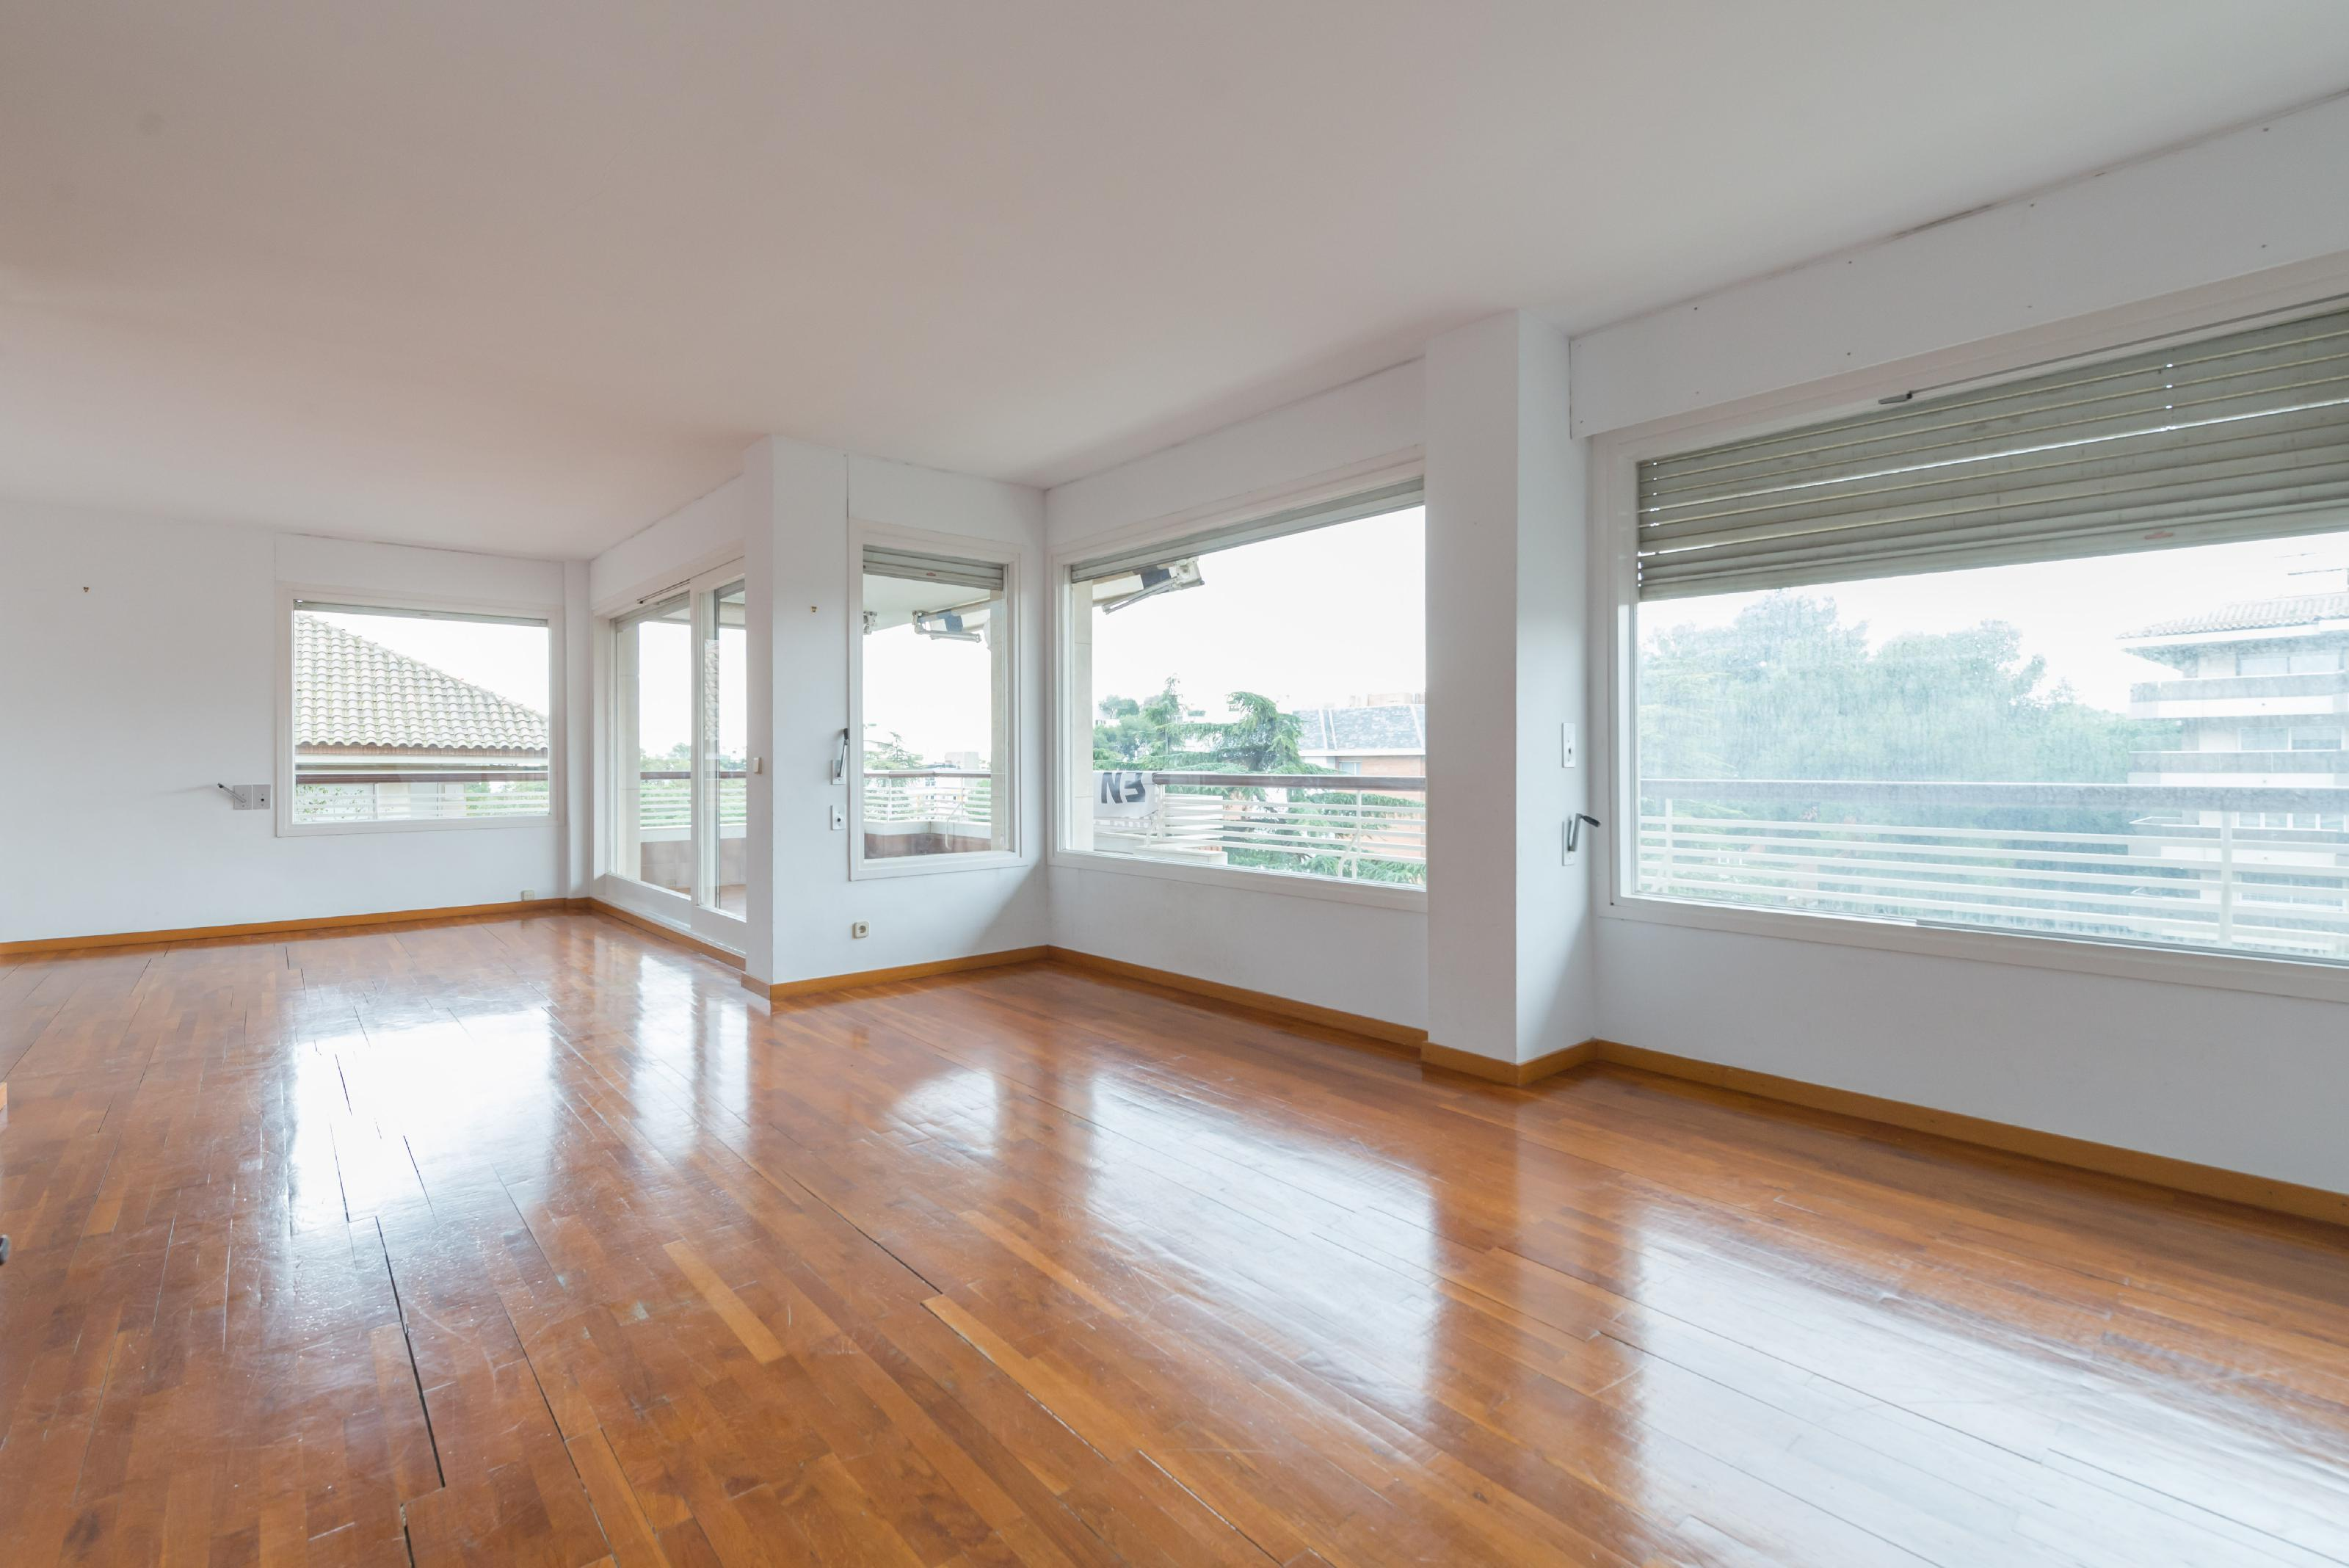 245495 Penthouse for sale in Les Corts, Pedralbes 3